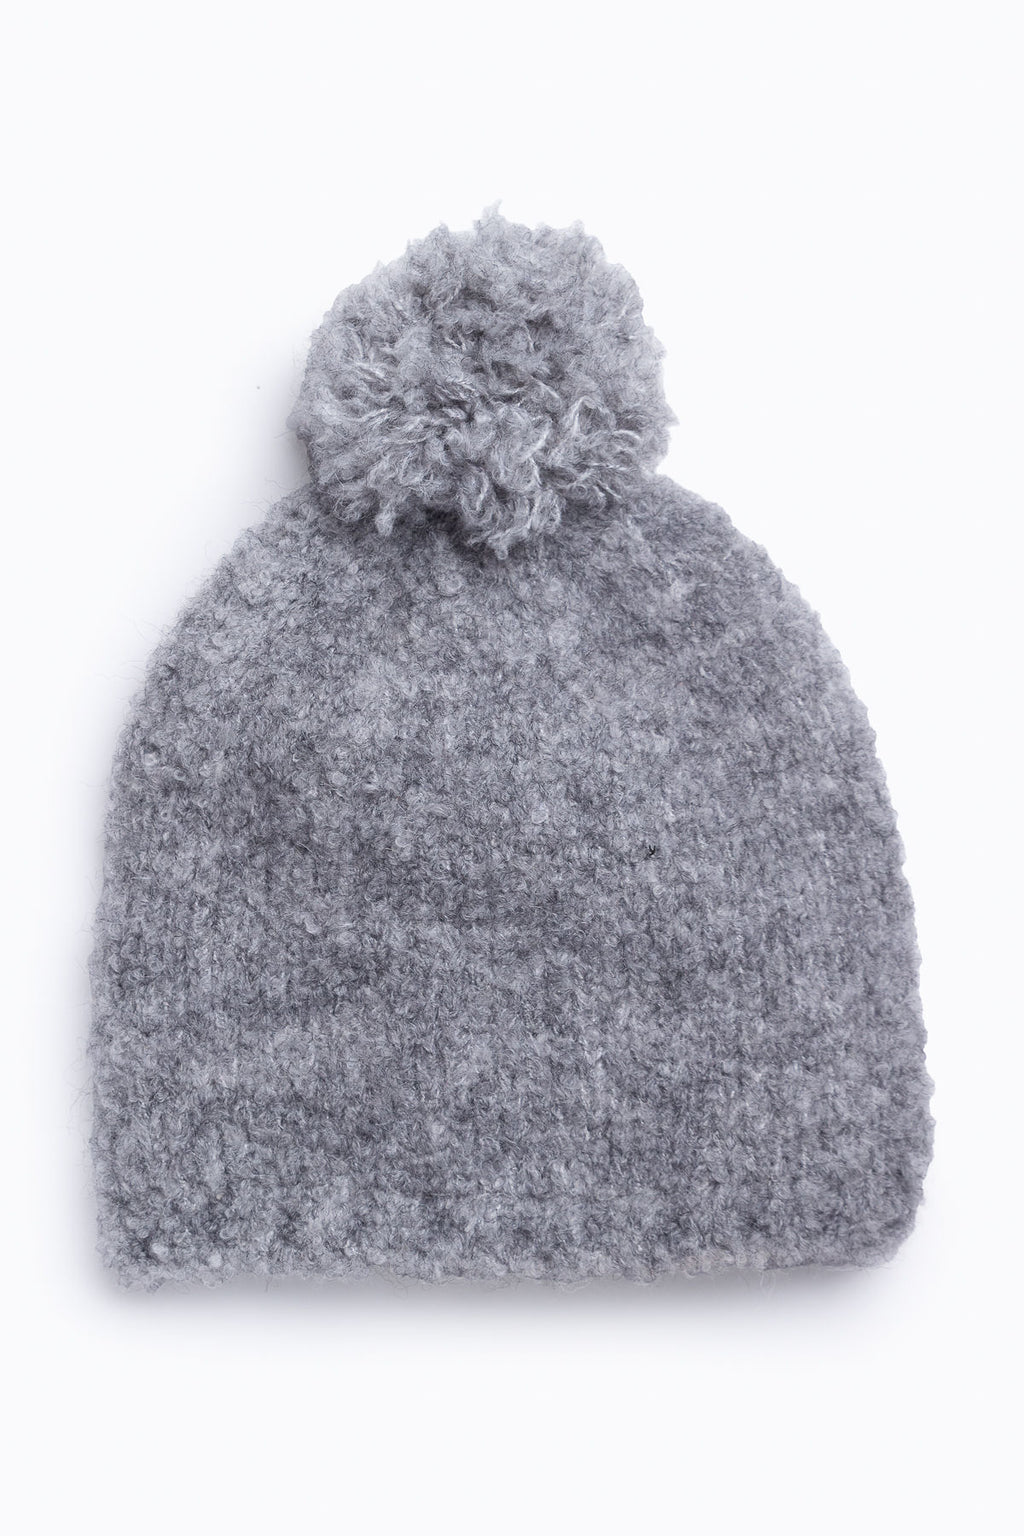 Cozy Pom Beanie in Heather Grey